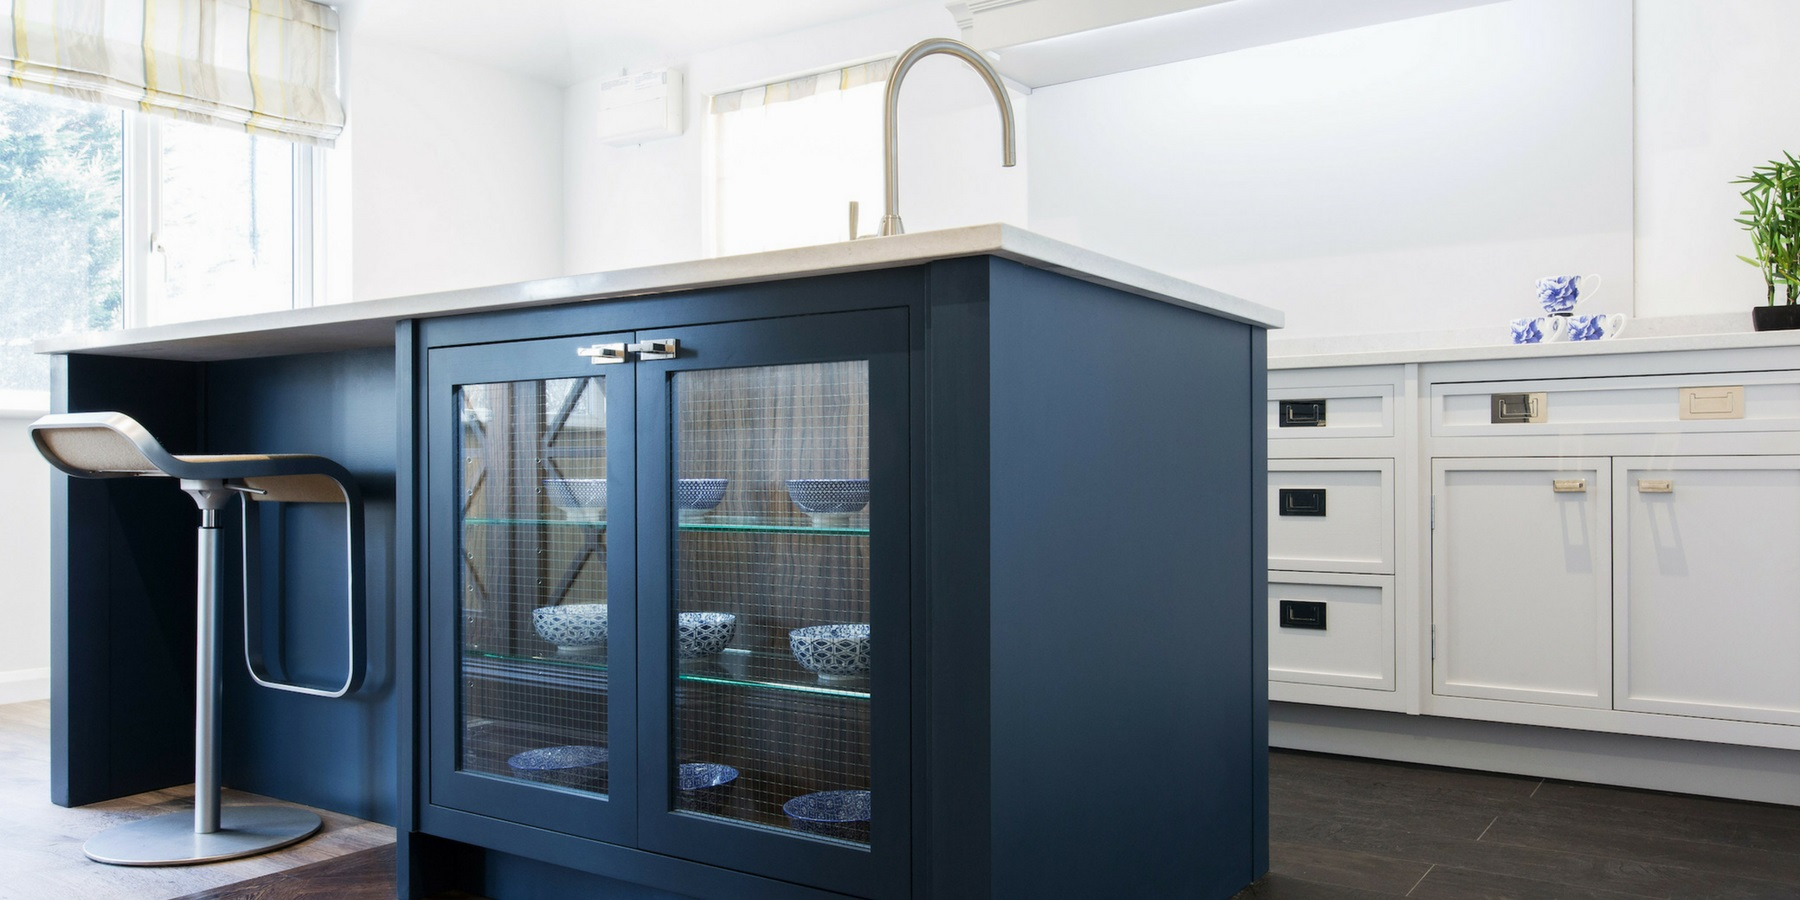 Bespoke Contemporary Shaker Kitchen - Burlanes handmade Decolane kitchen island with glass panelled doors.